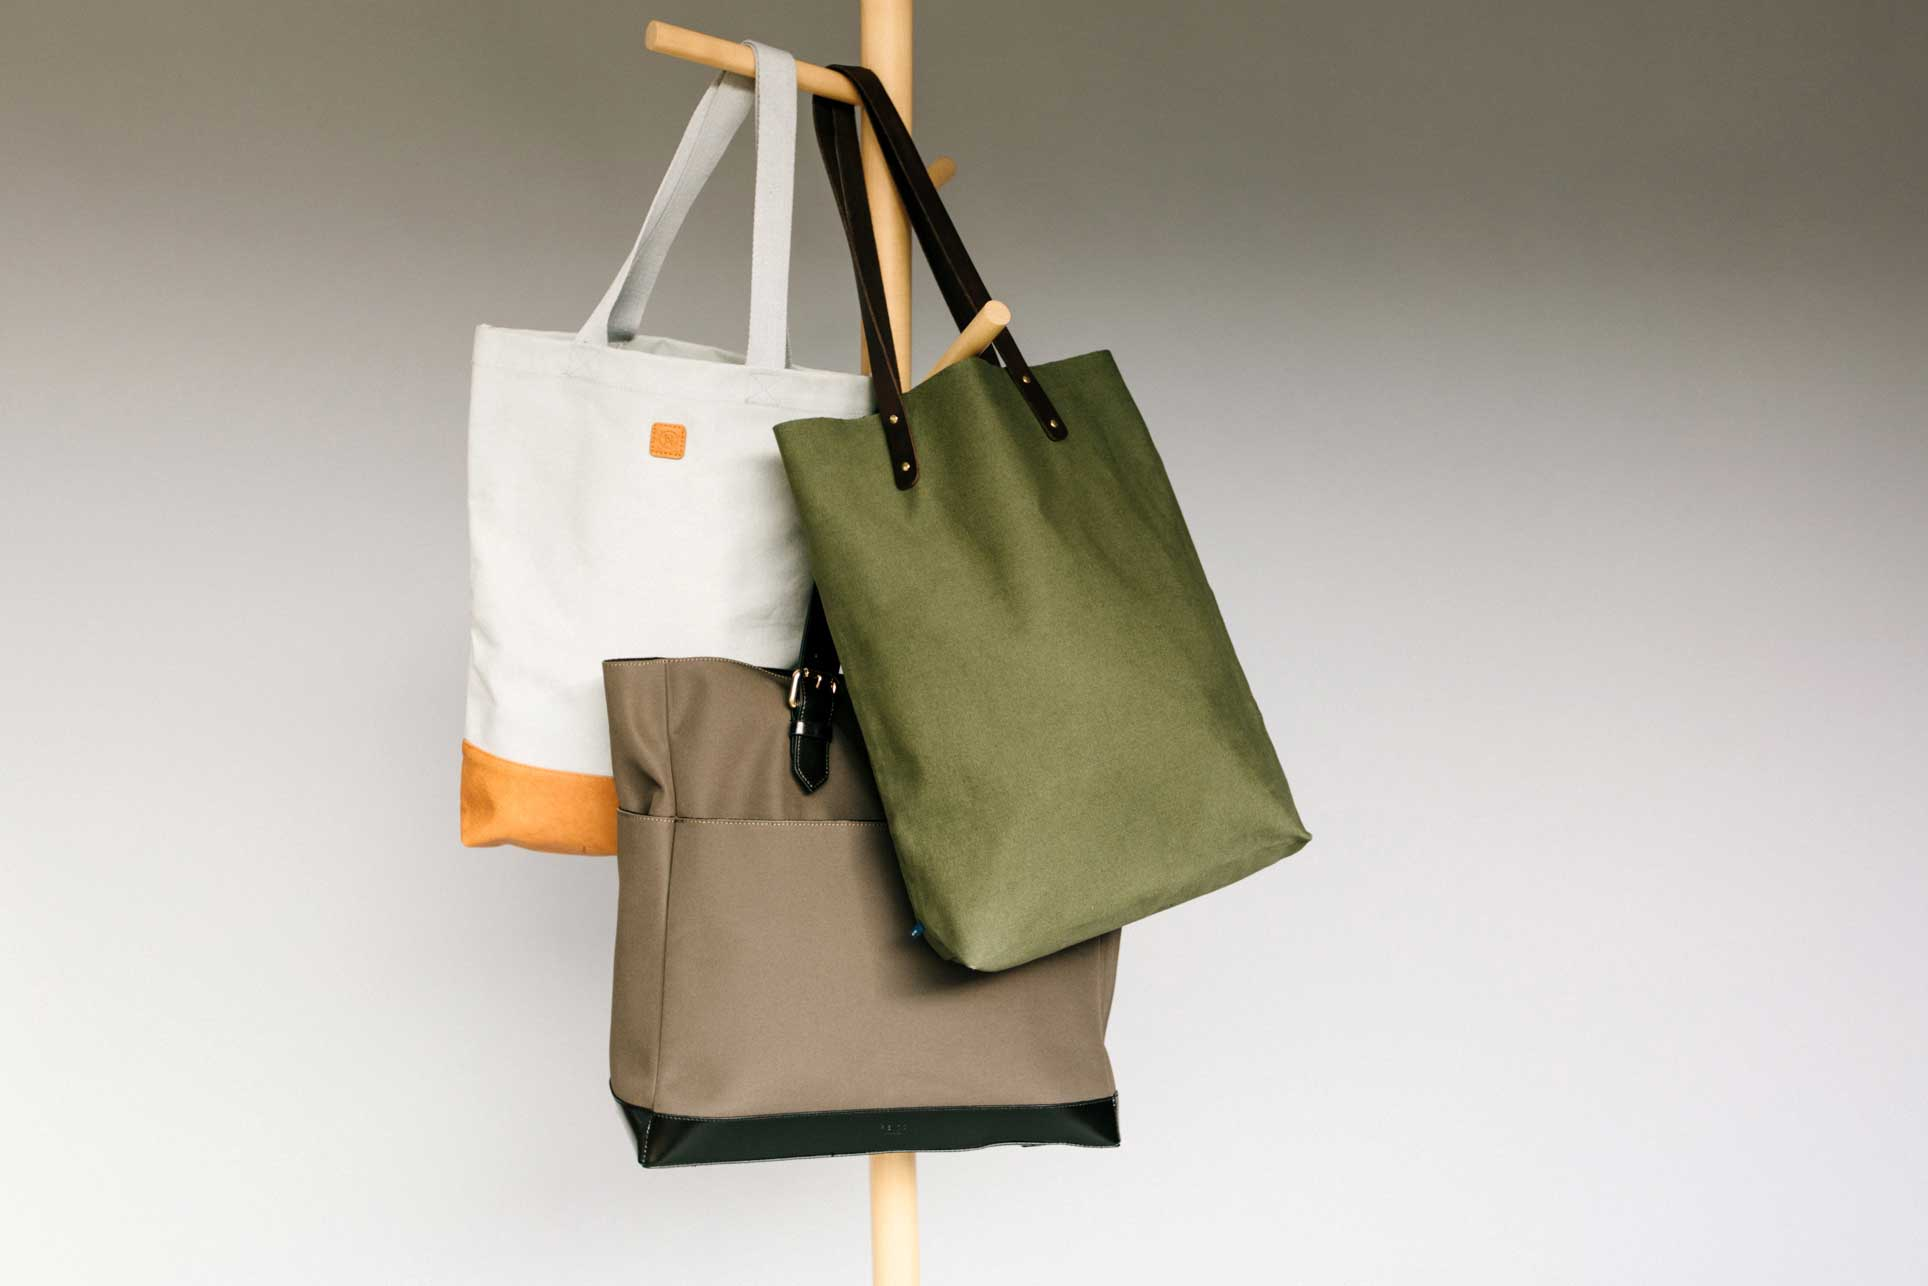 What is a tote bag?